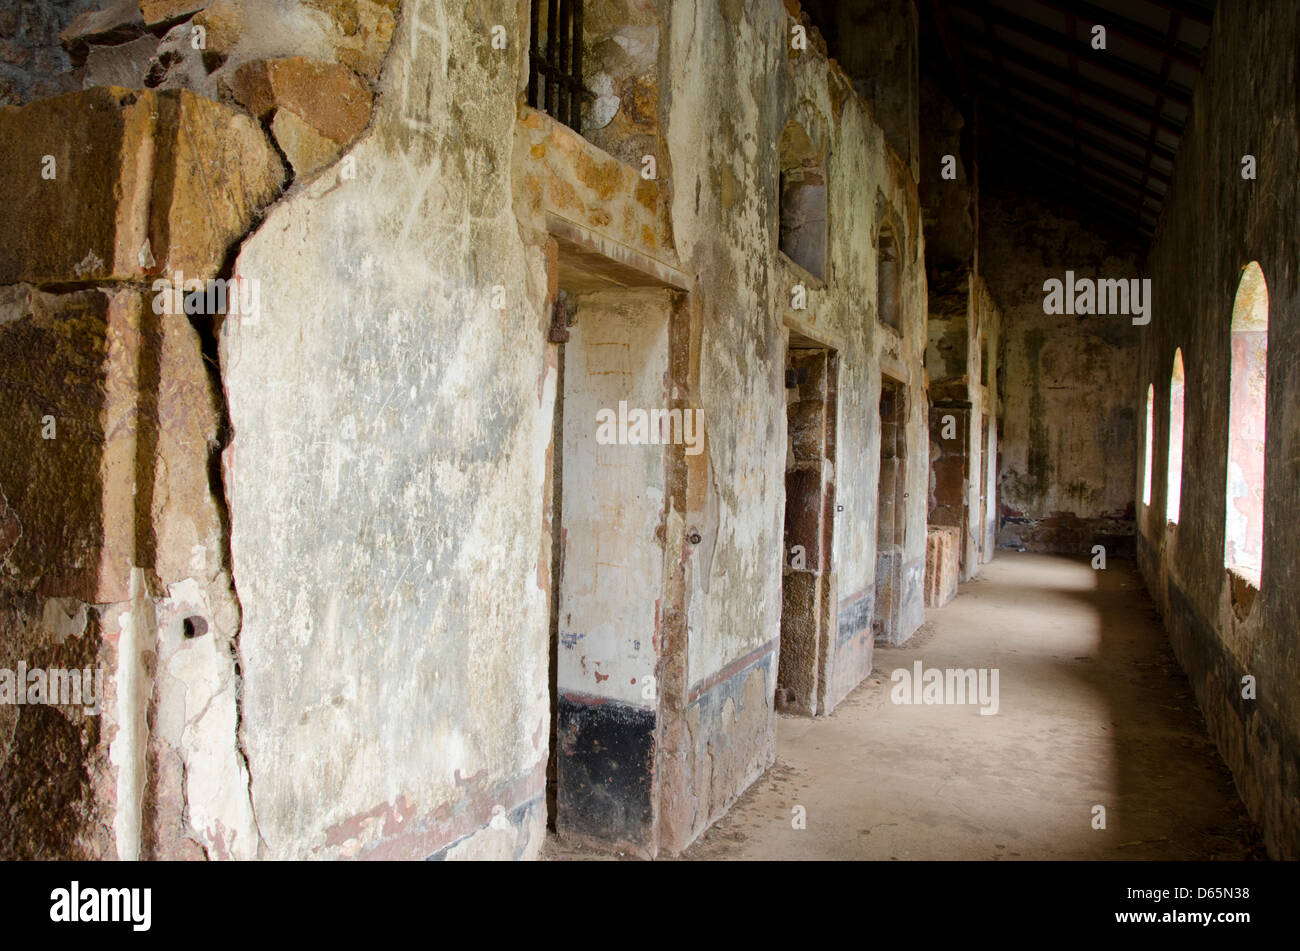 French Overseas Territory, French Guiana, Salvation Islands. Ile Royale, ruins of the infamous penal colony. - Stock Image